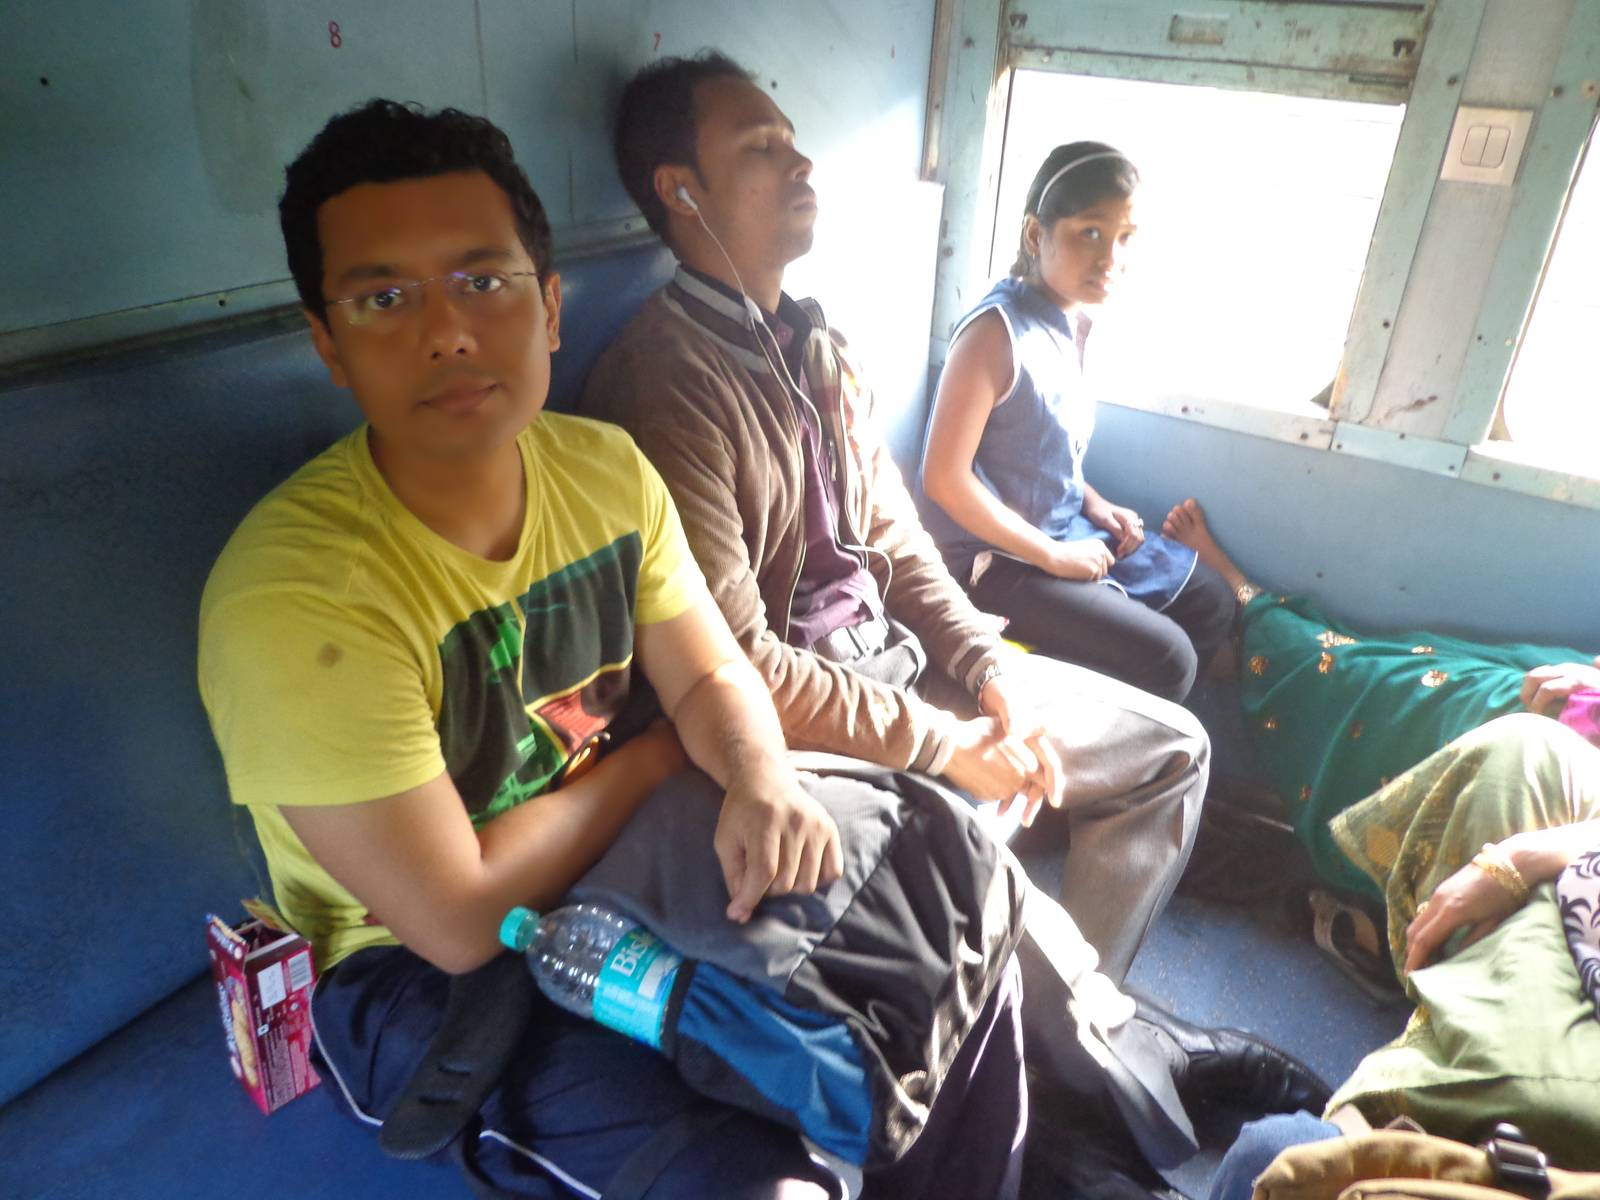 Nandy with fellow passengers. The small girl was reading an Assamese to English wordlist.